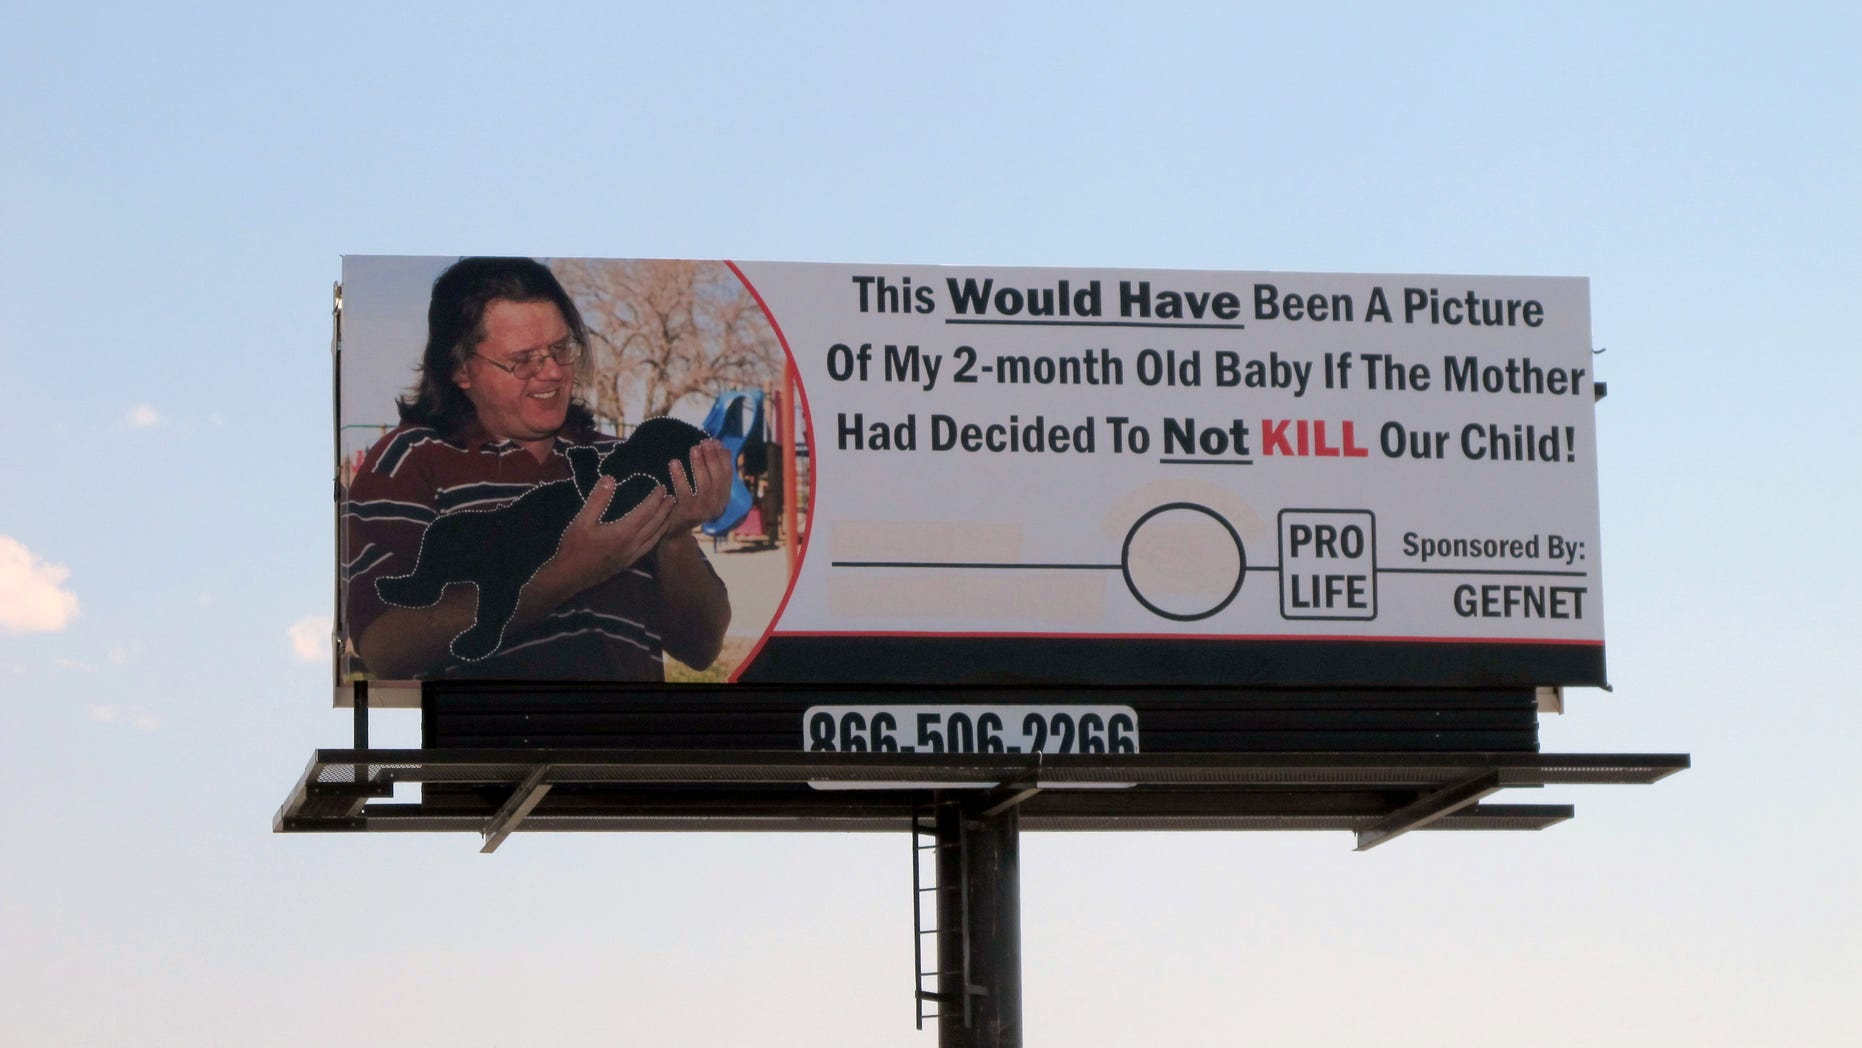 June 7: A controversial anti-abortion billboard that has been ordered to be removed in Alamogordo, NM